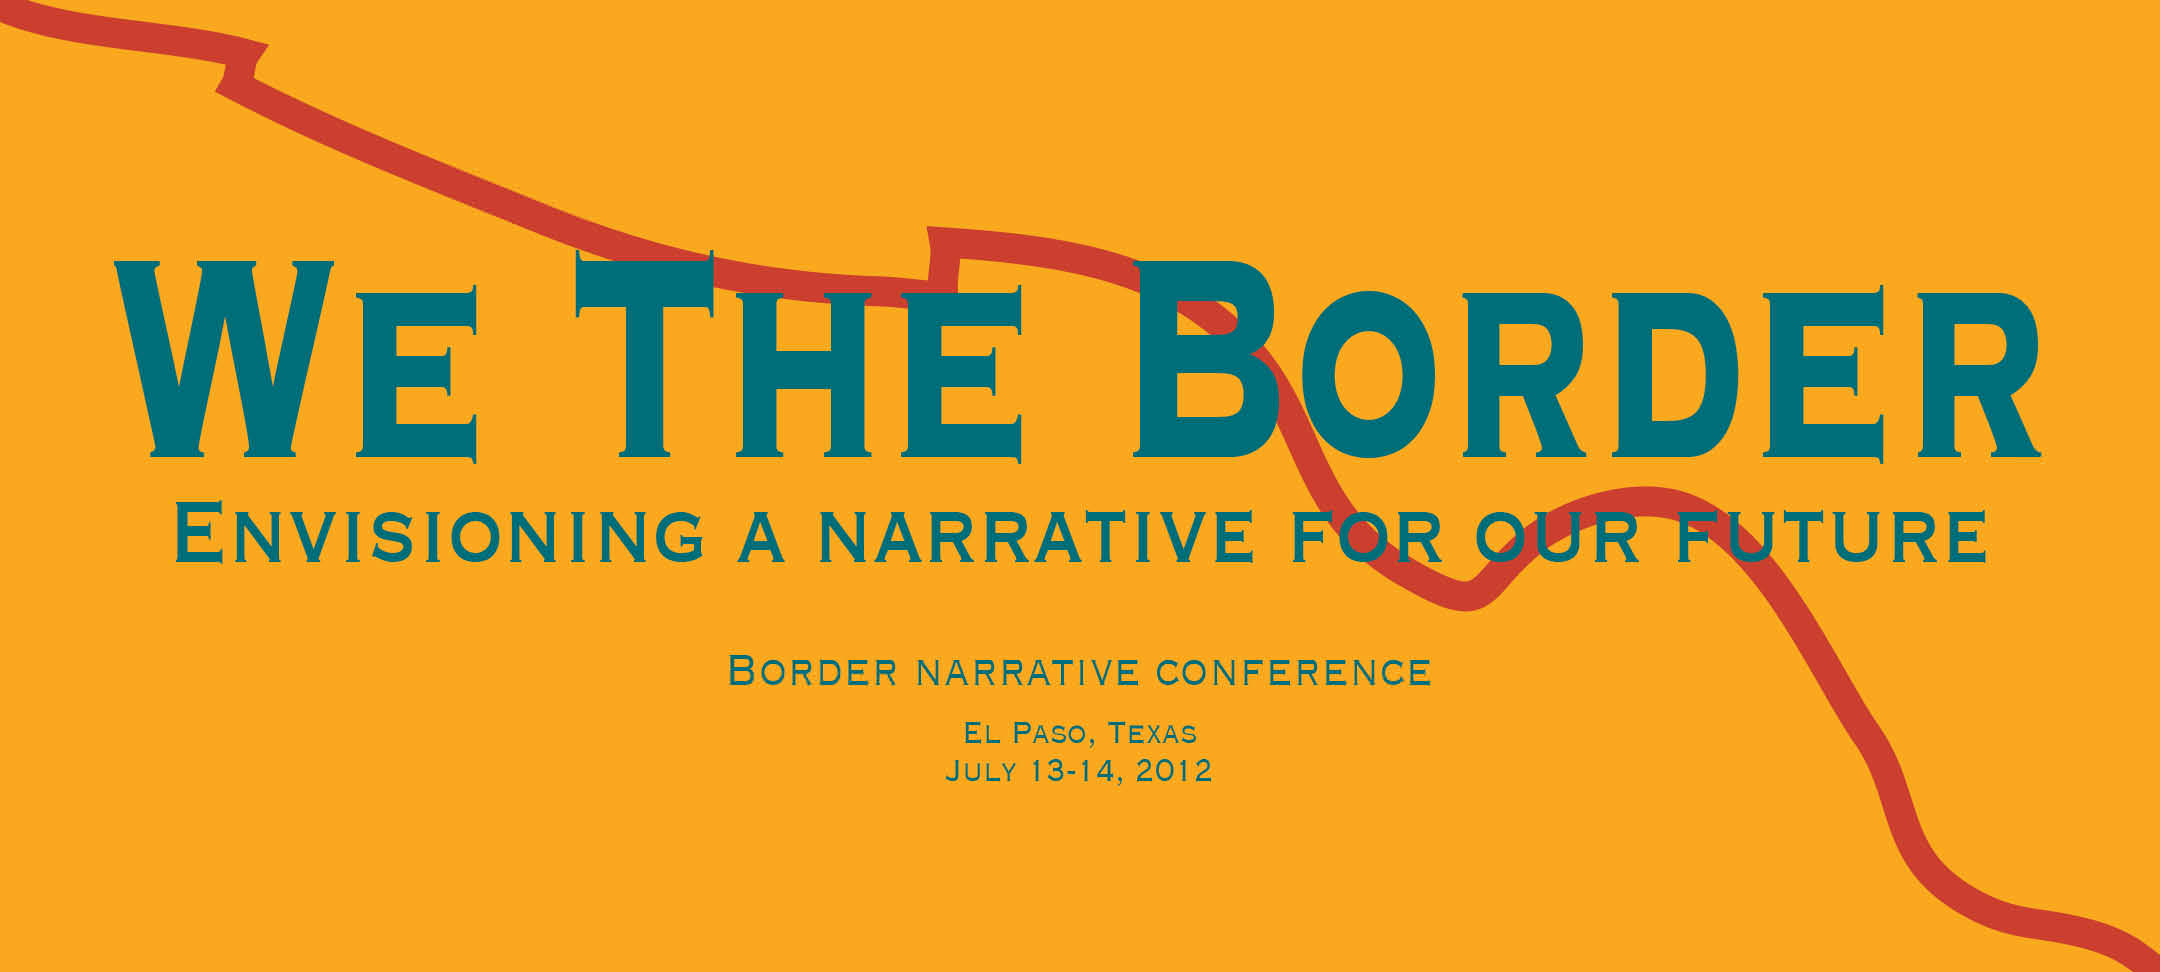 border narrative banner image